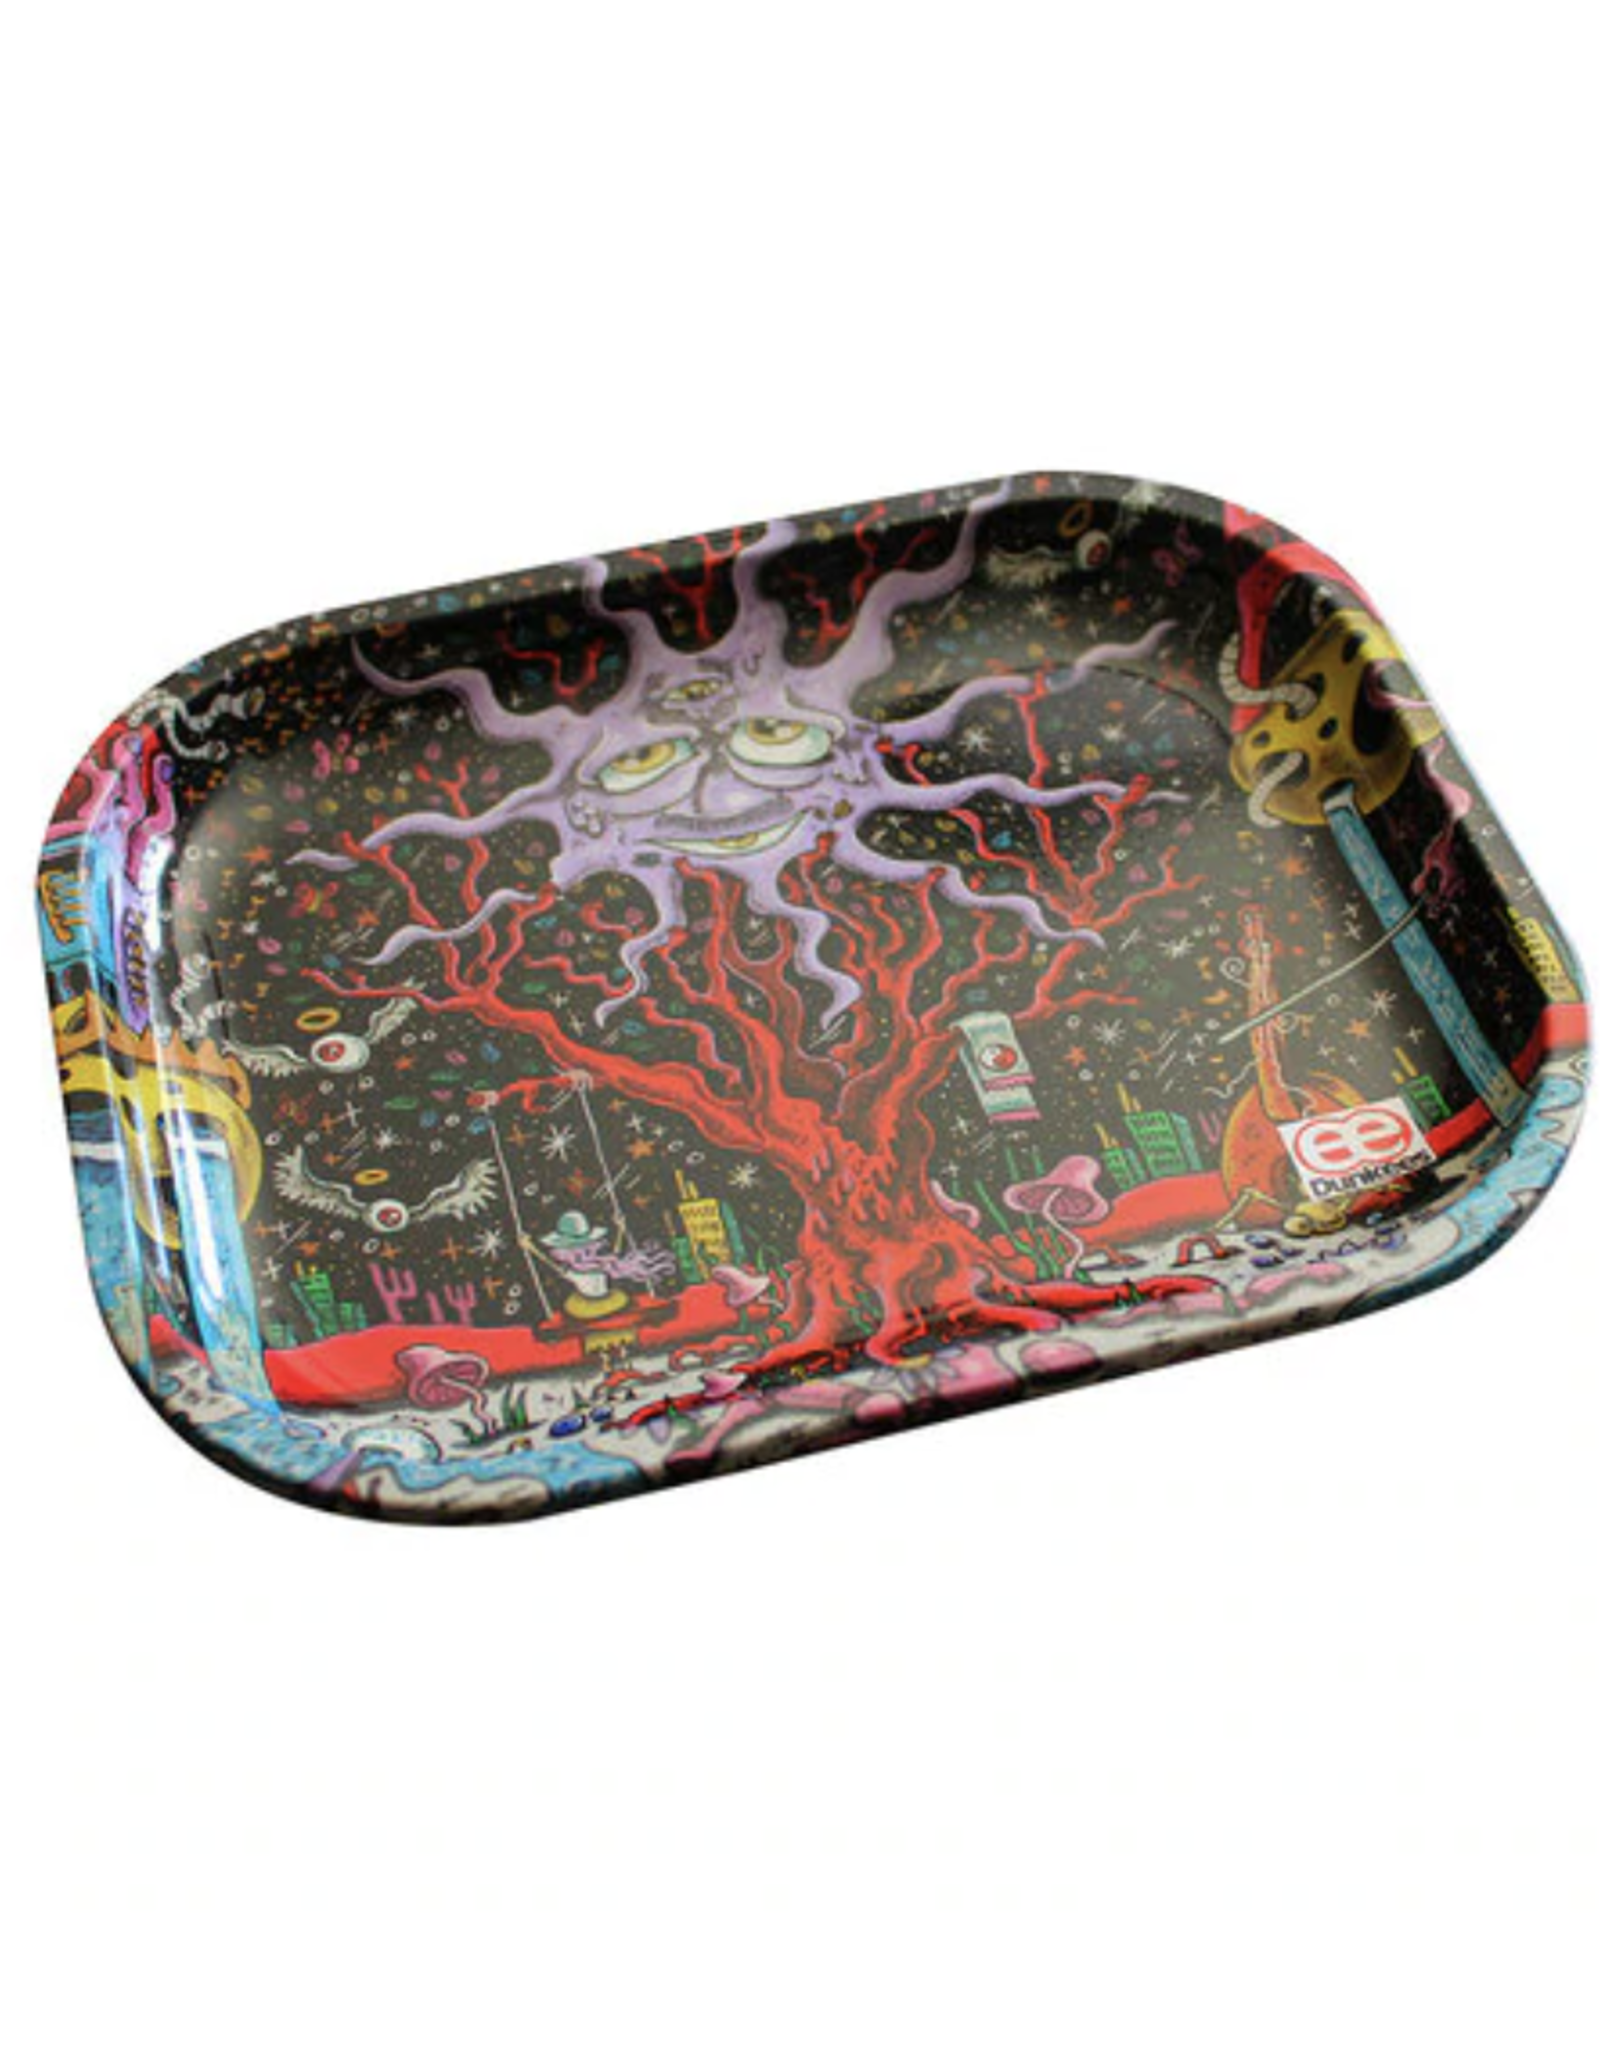 """Dunkees 5.5"""" x 7.5"""" Rolling Tray - Happy Tree"""